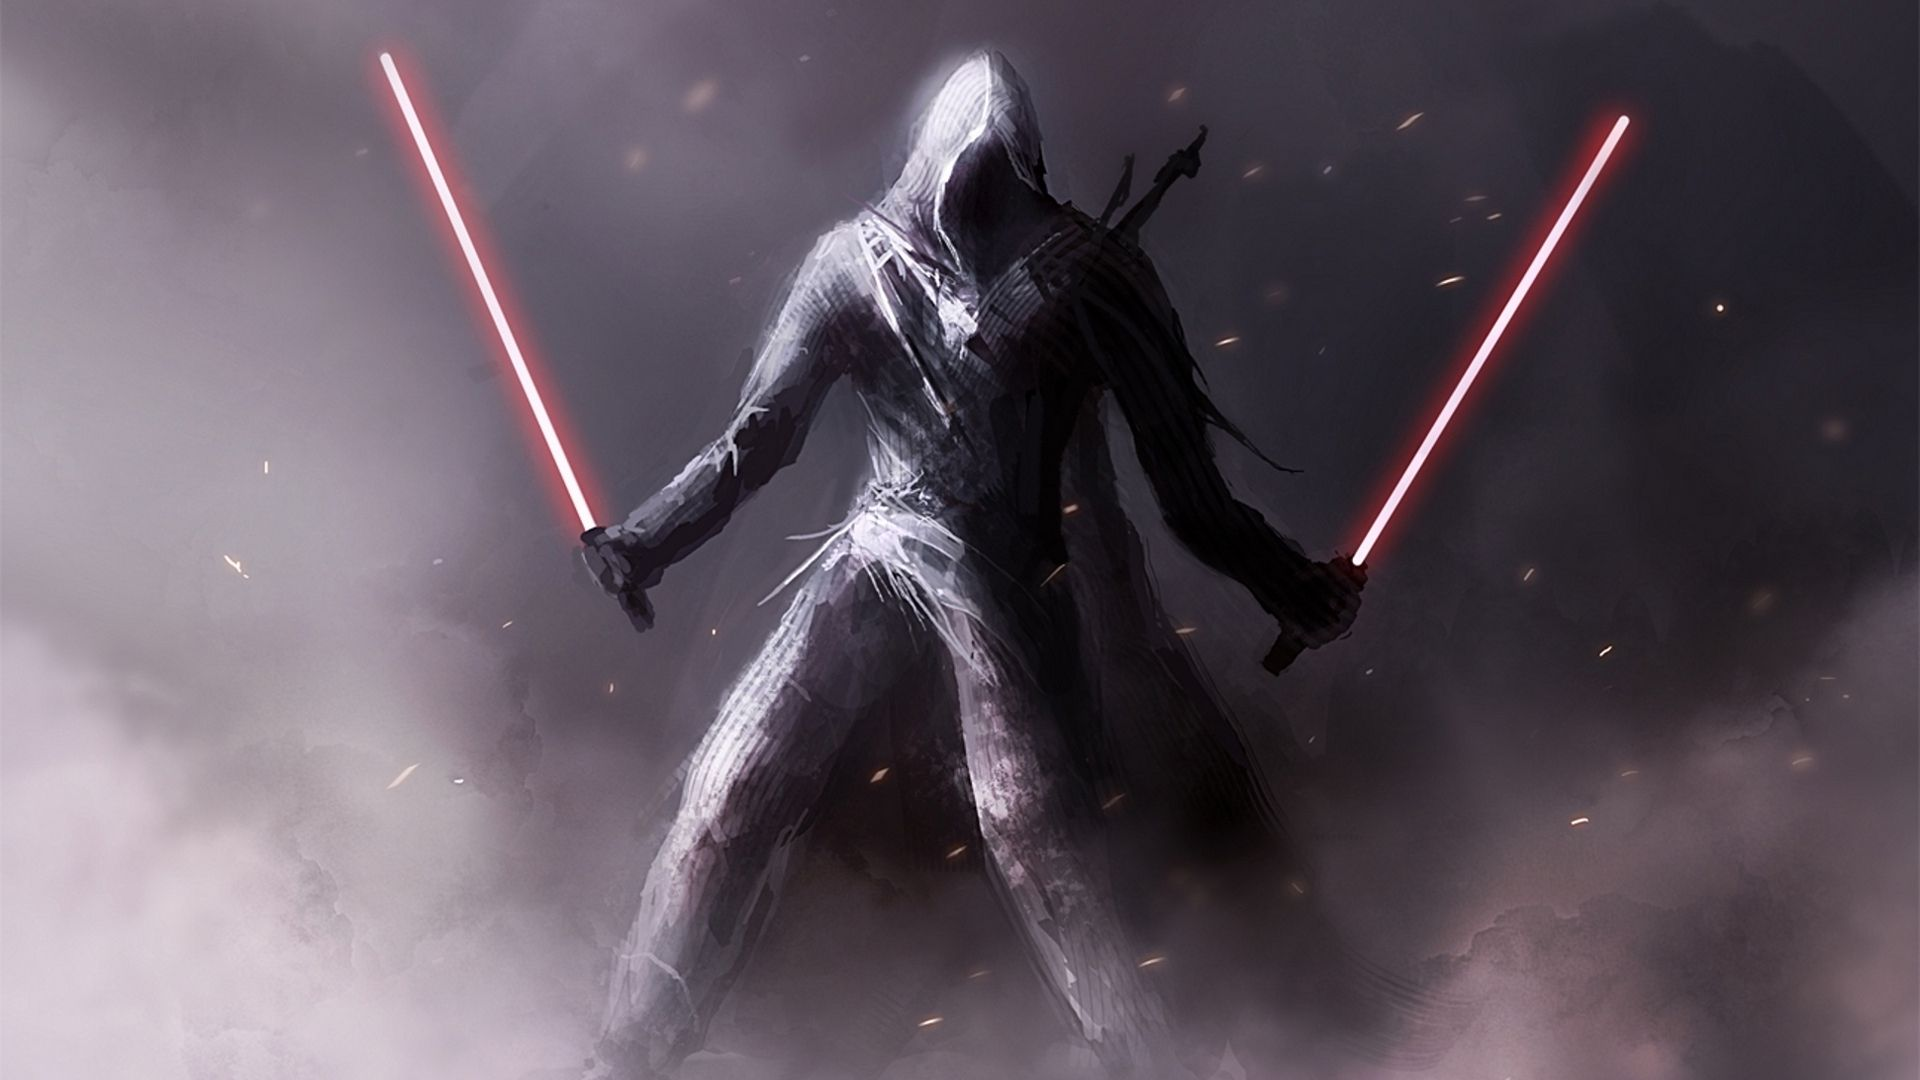 Epic Star Wars Wallpapers Top Free Epic Star Wars